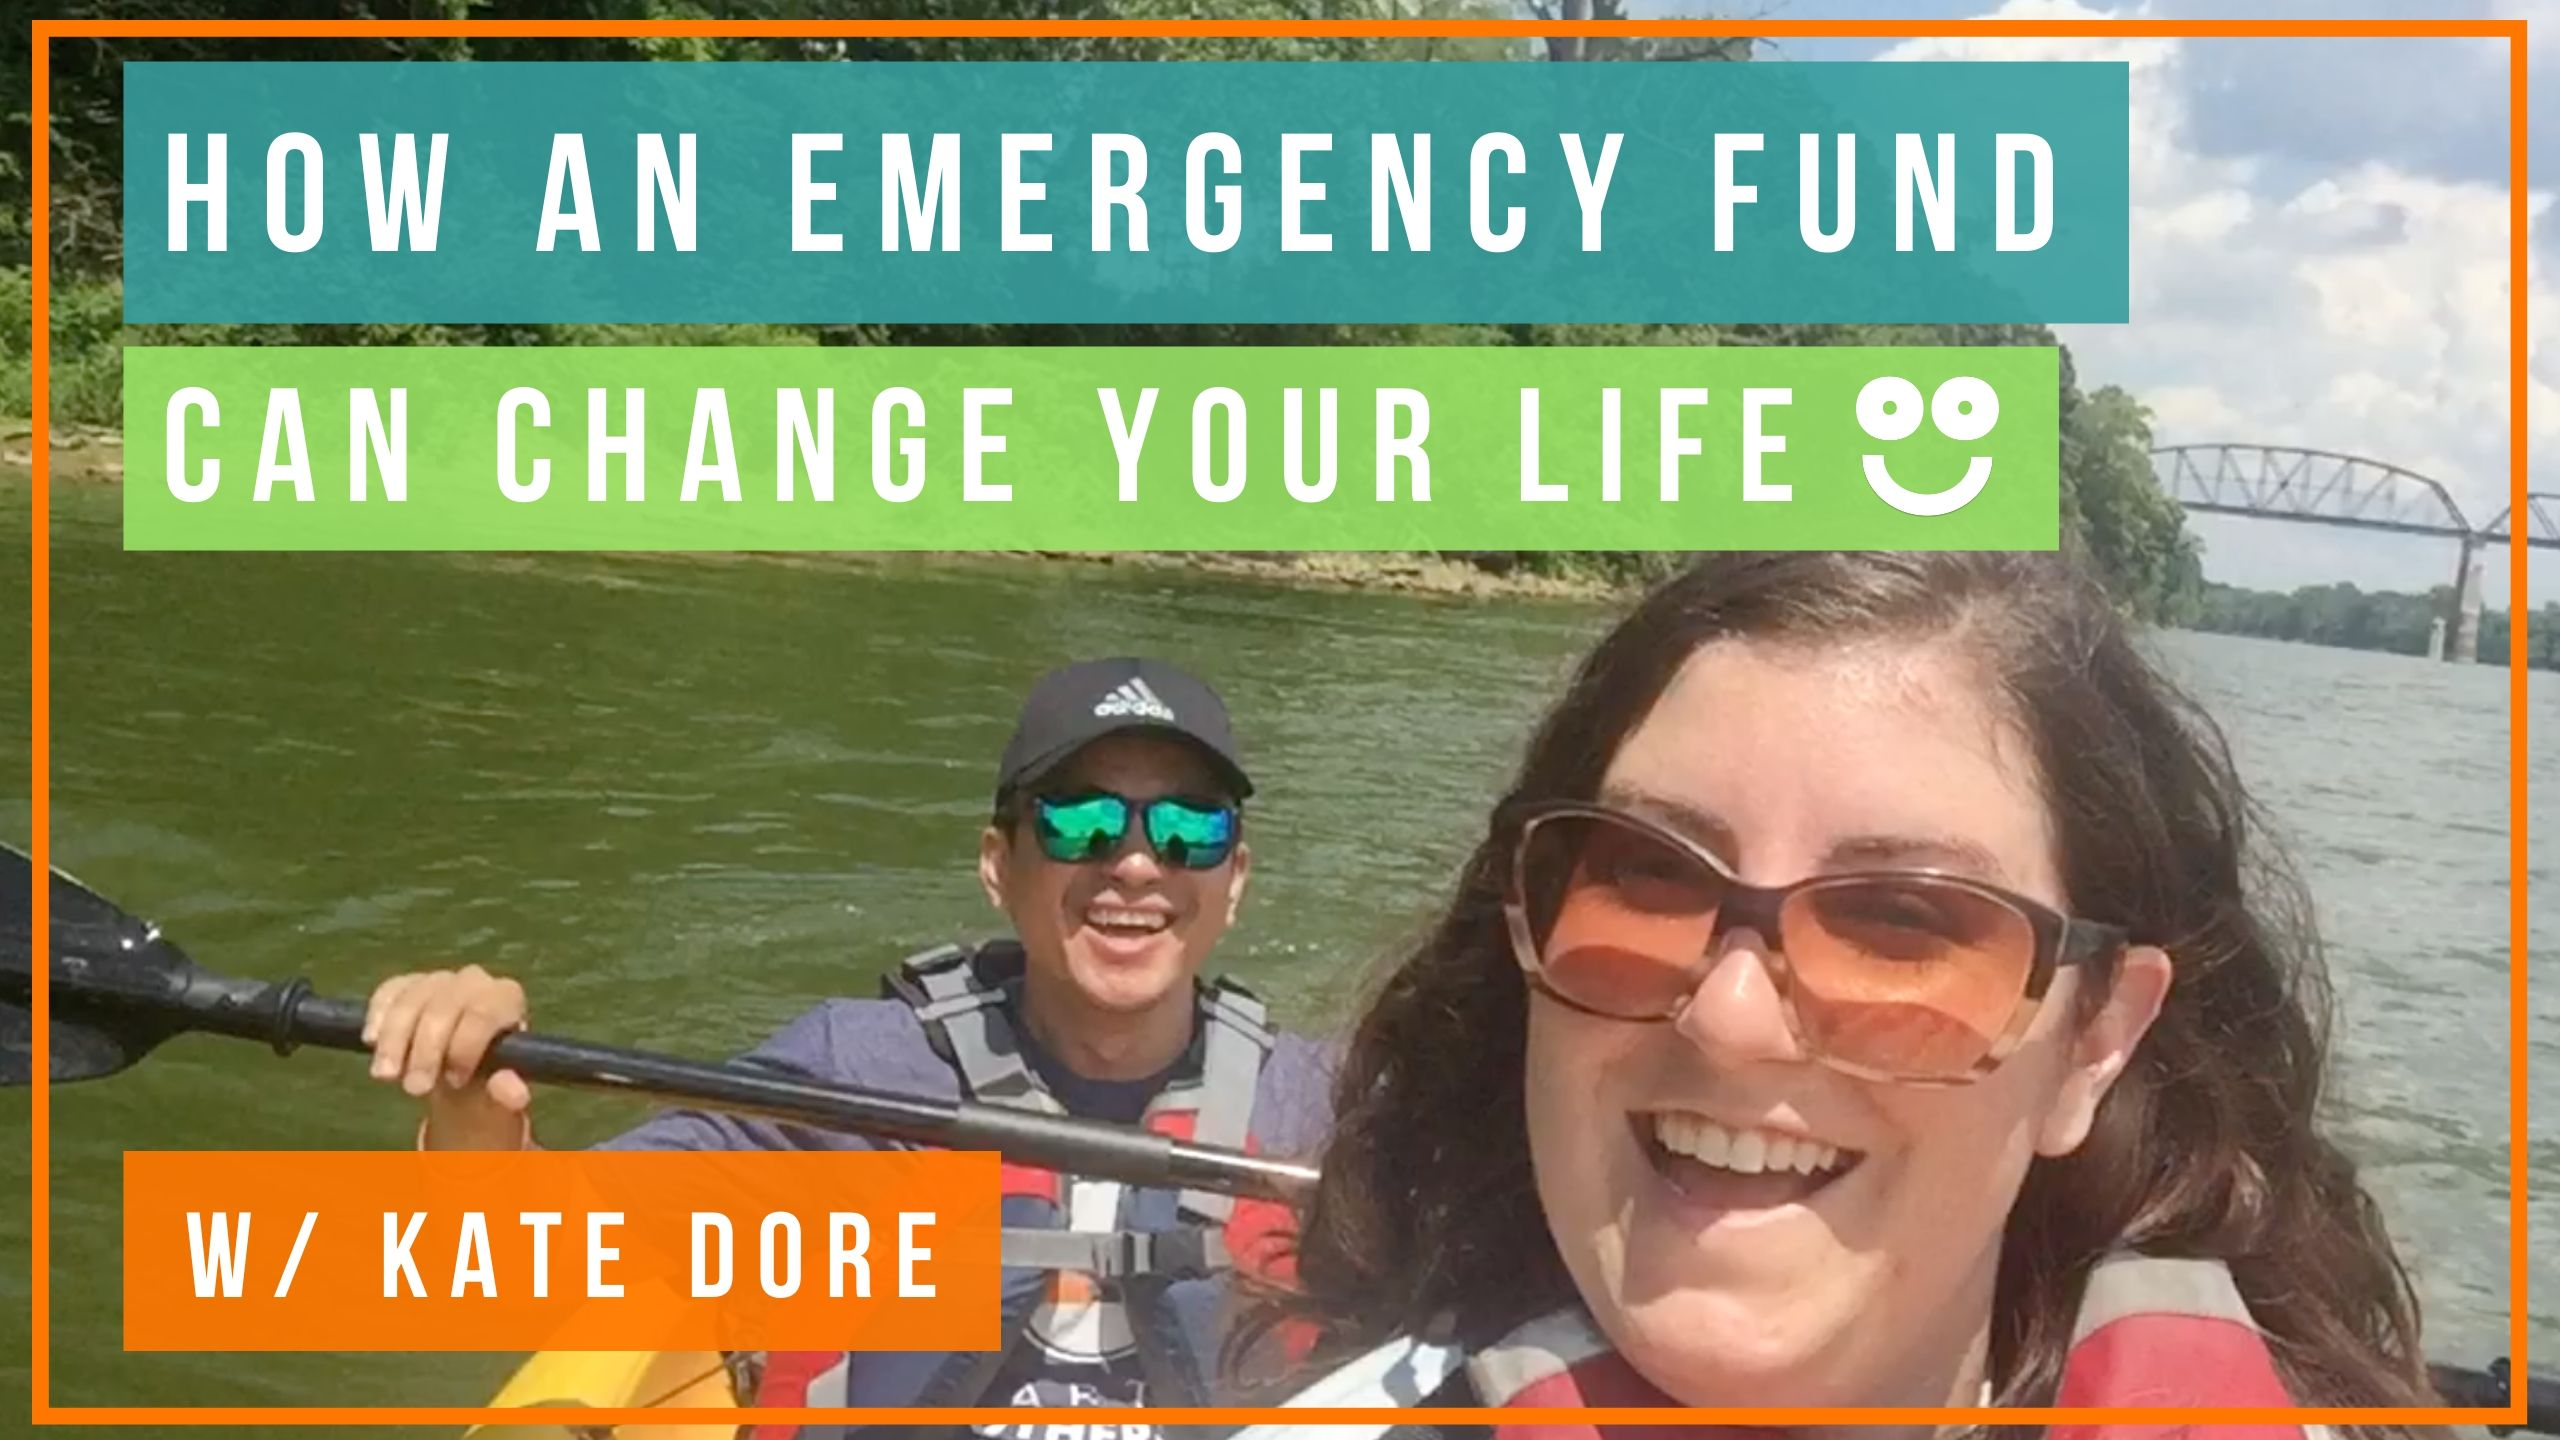 How to Save an Emergency Fund and Change Your Life with Kate Dore